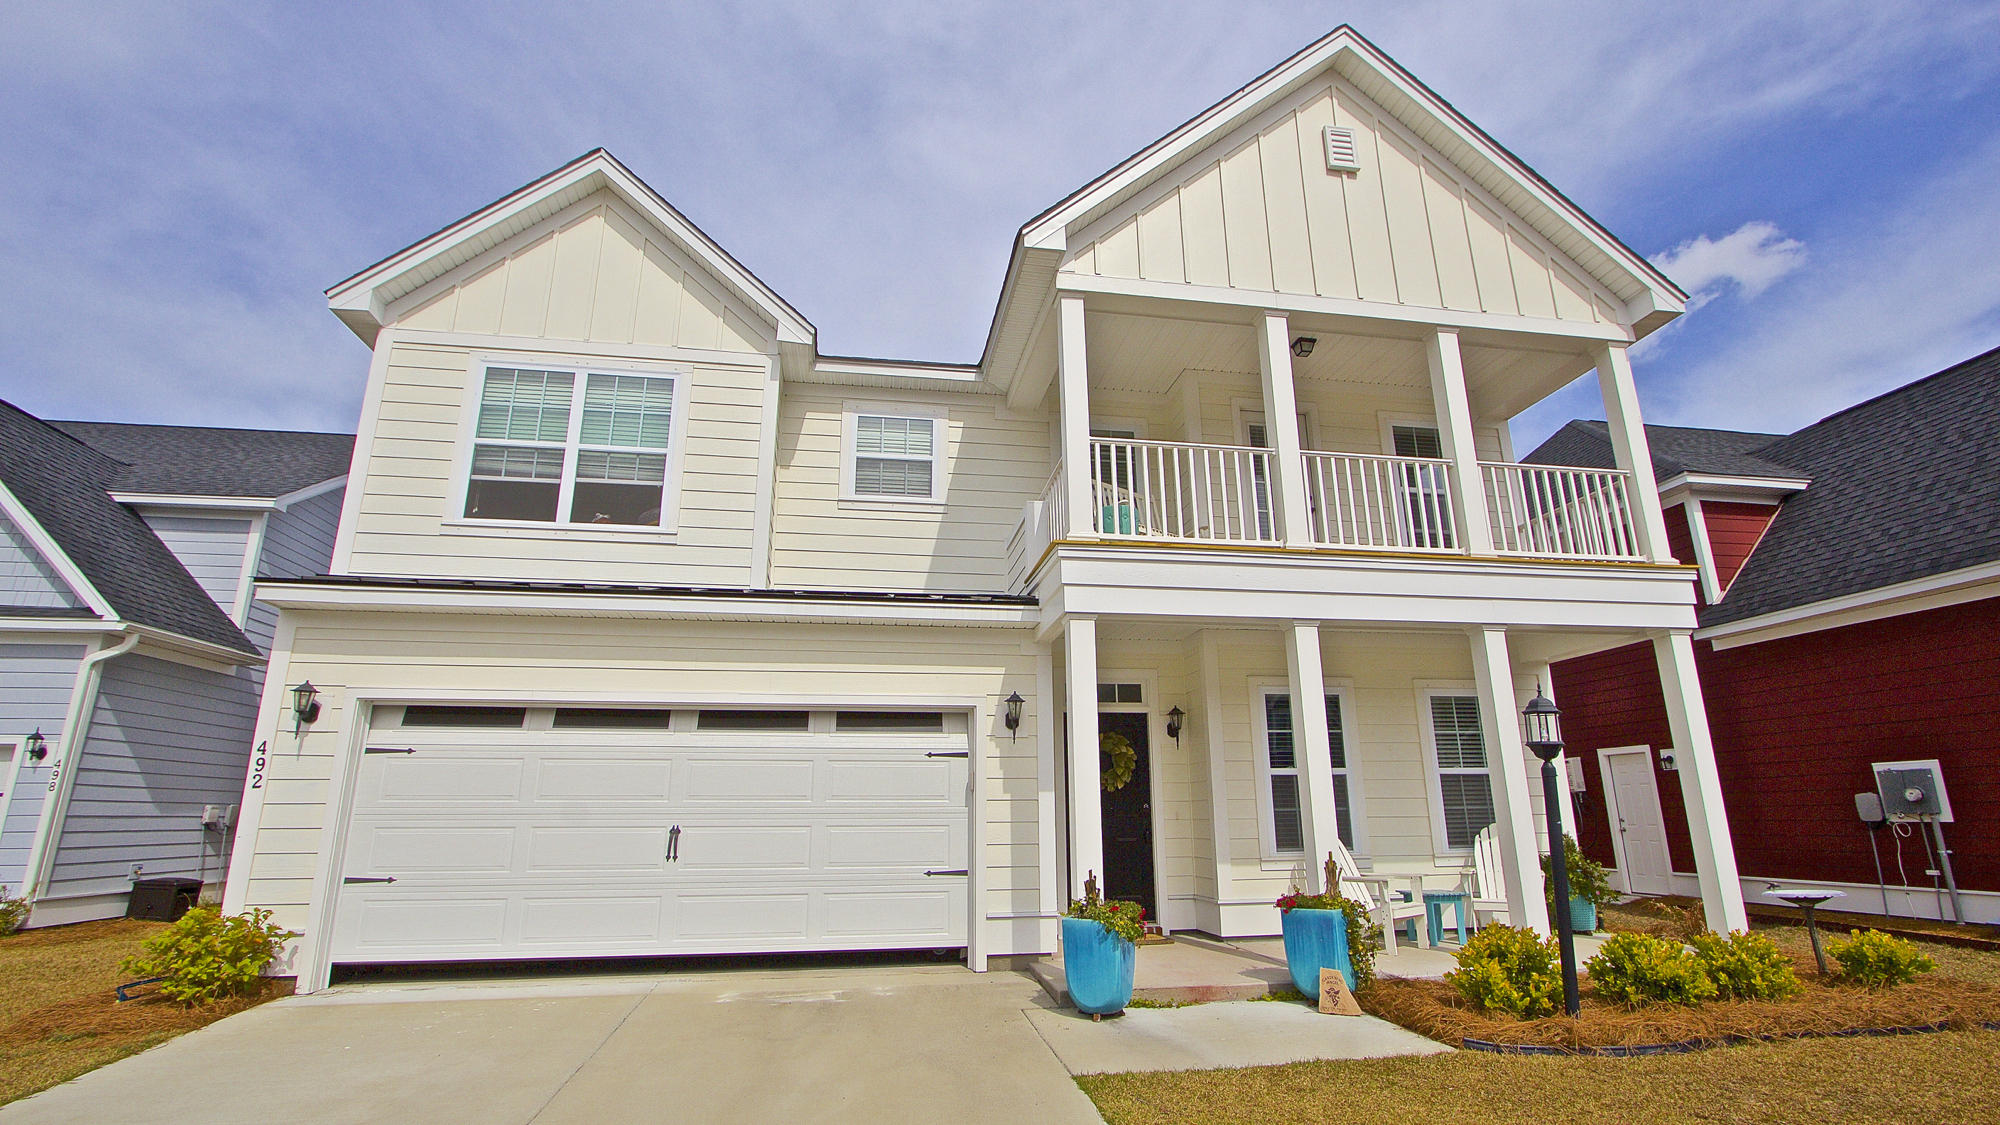 492 Nelliefield Trail Wando, SC 29492